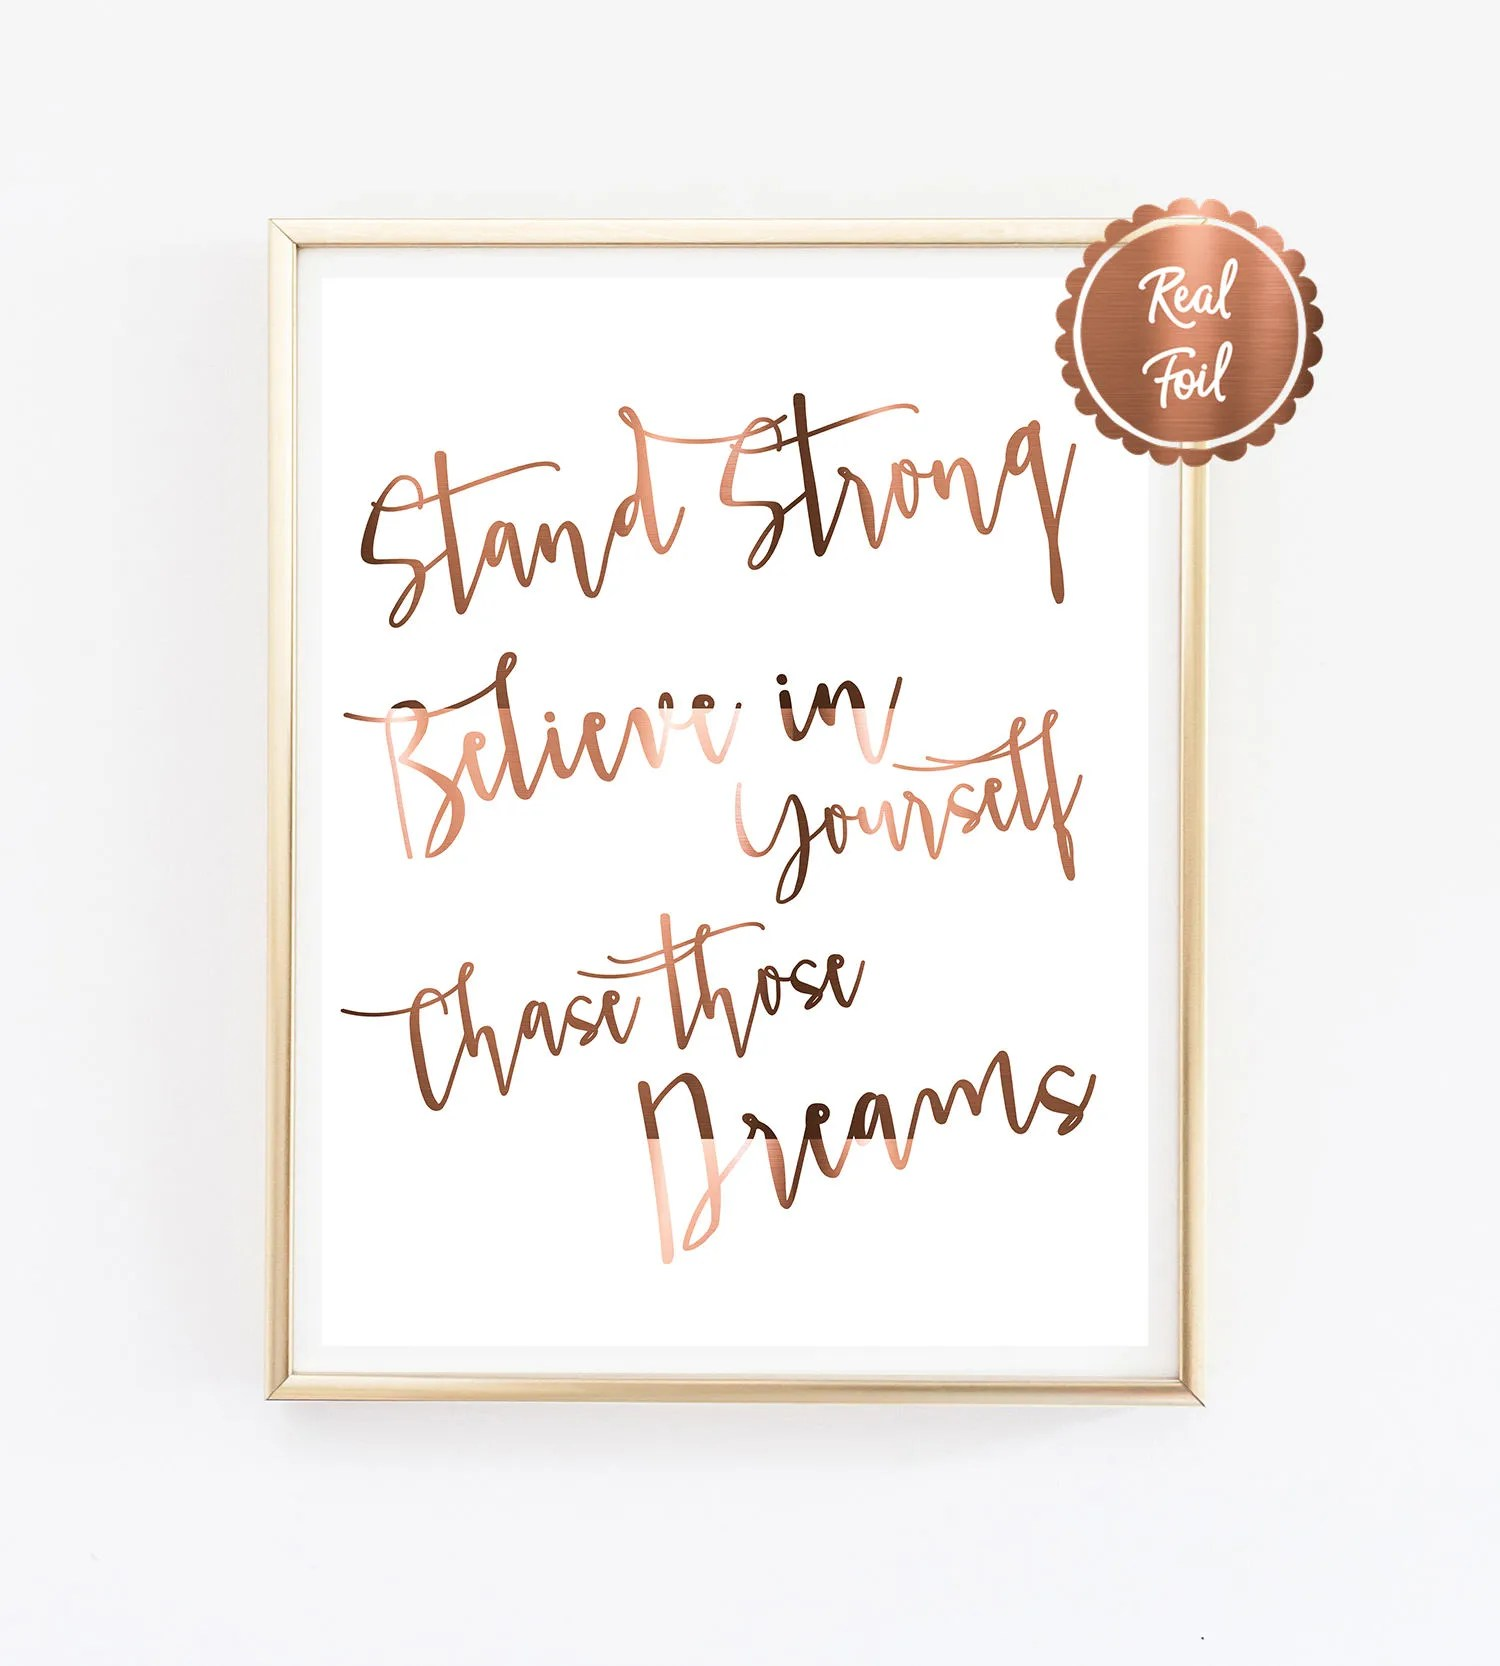 Inspiring Quote Print \/\/ Stand strong \/\/ Believe in yourself - free printable sorry cards